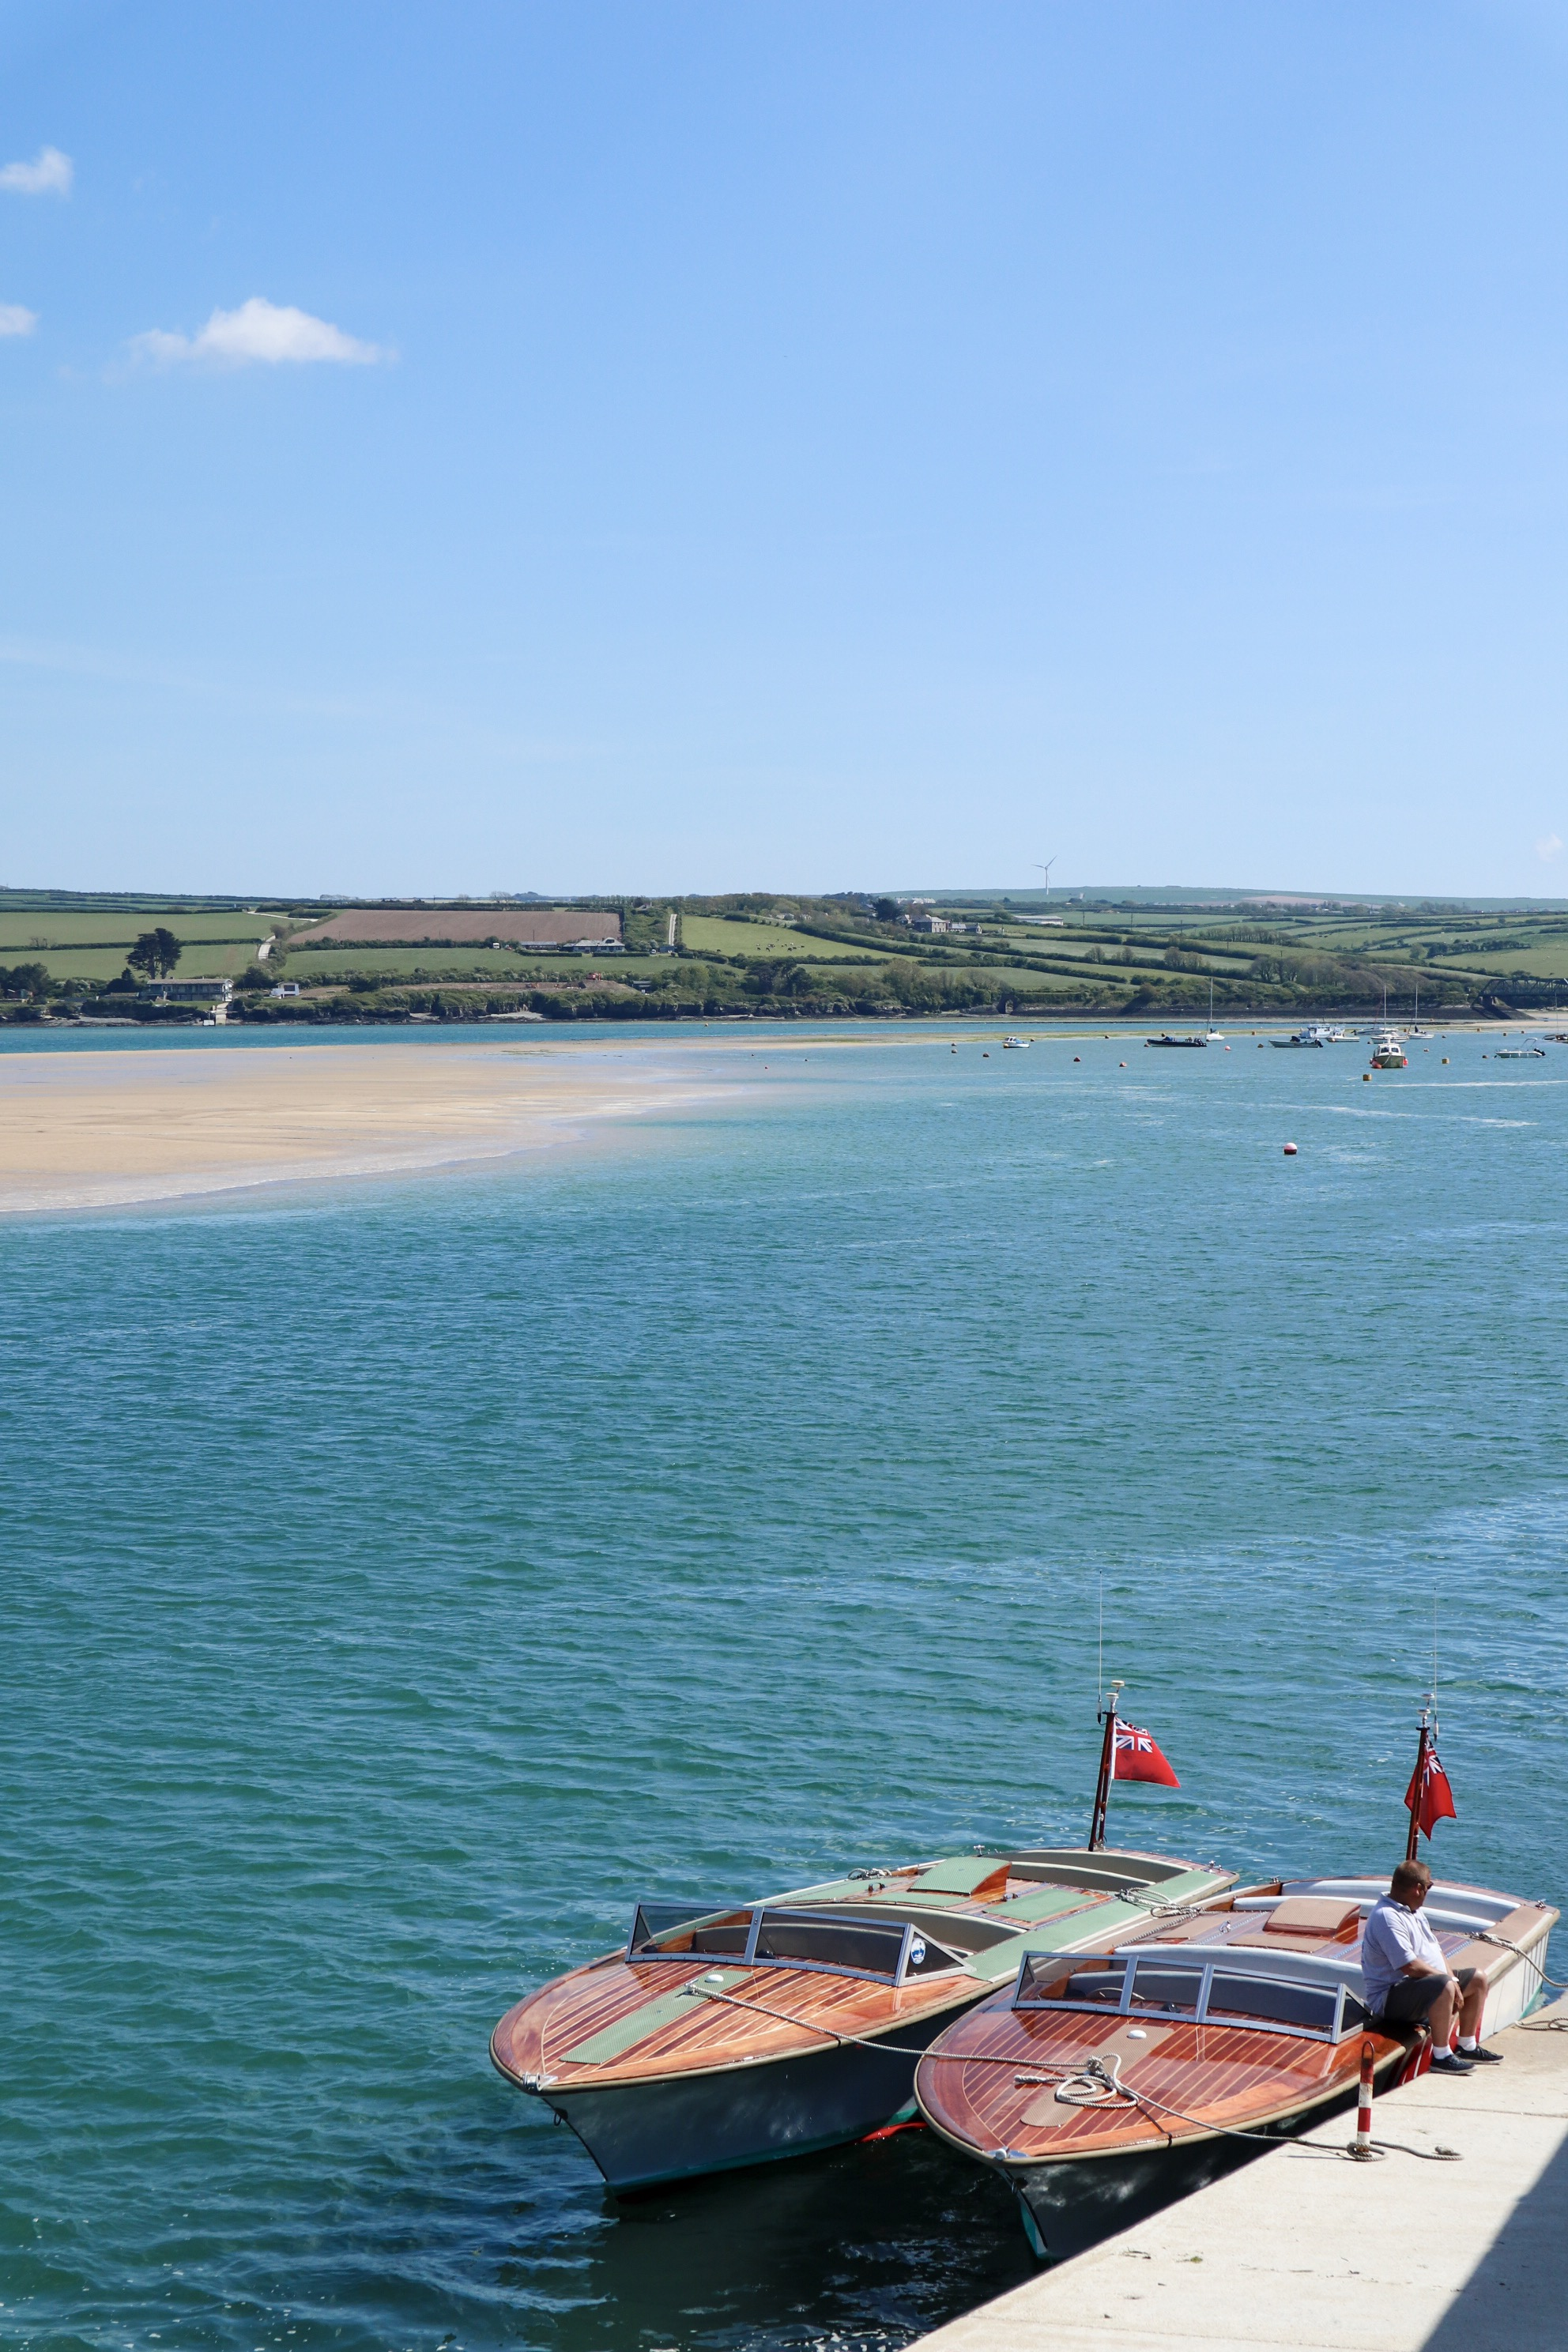 The Camel Trail - Wadebridge to Padstow